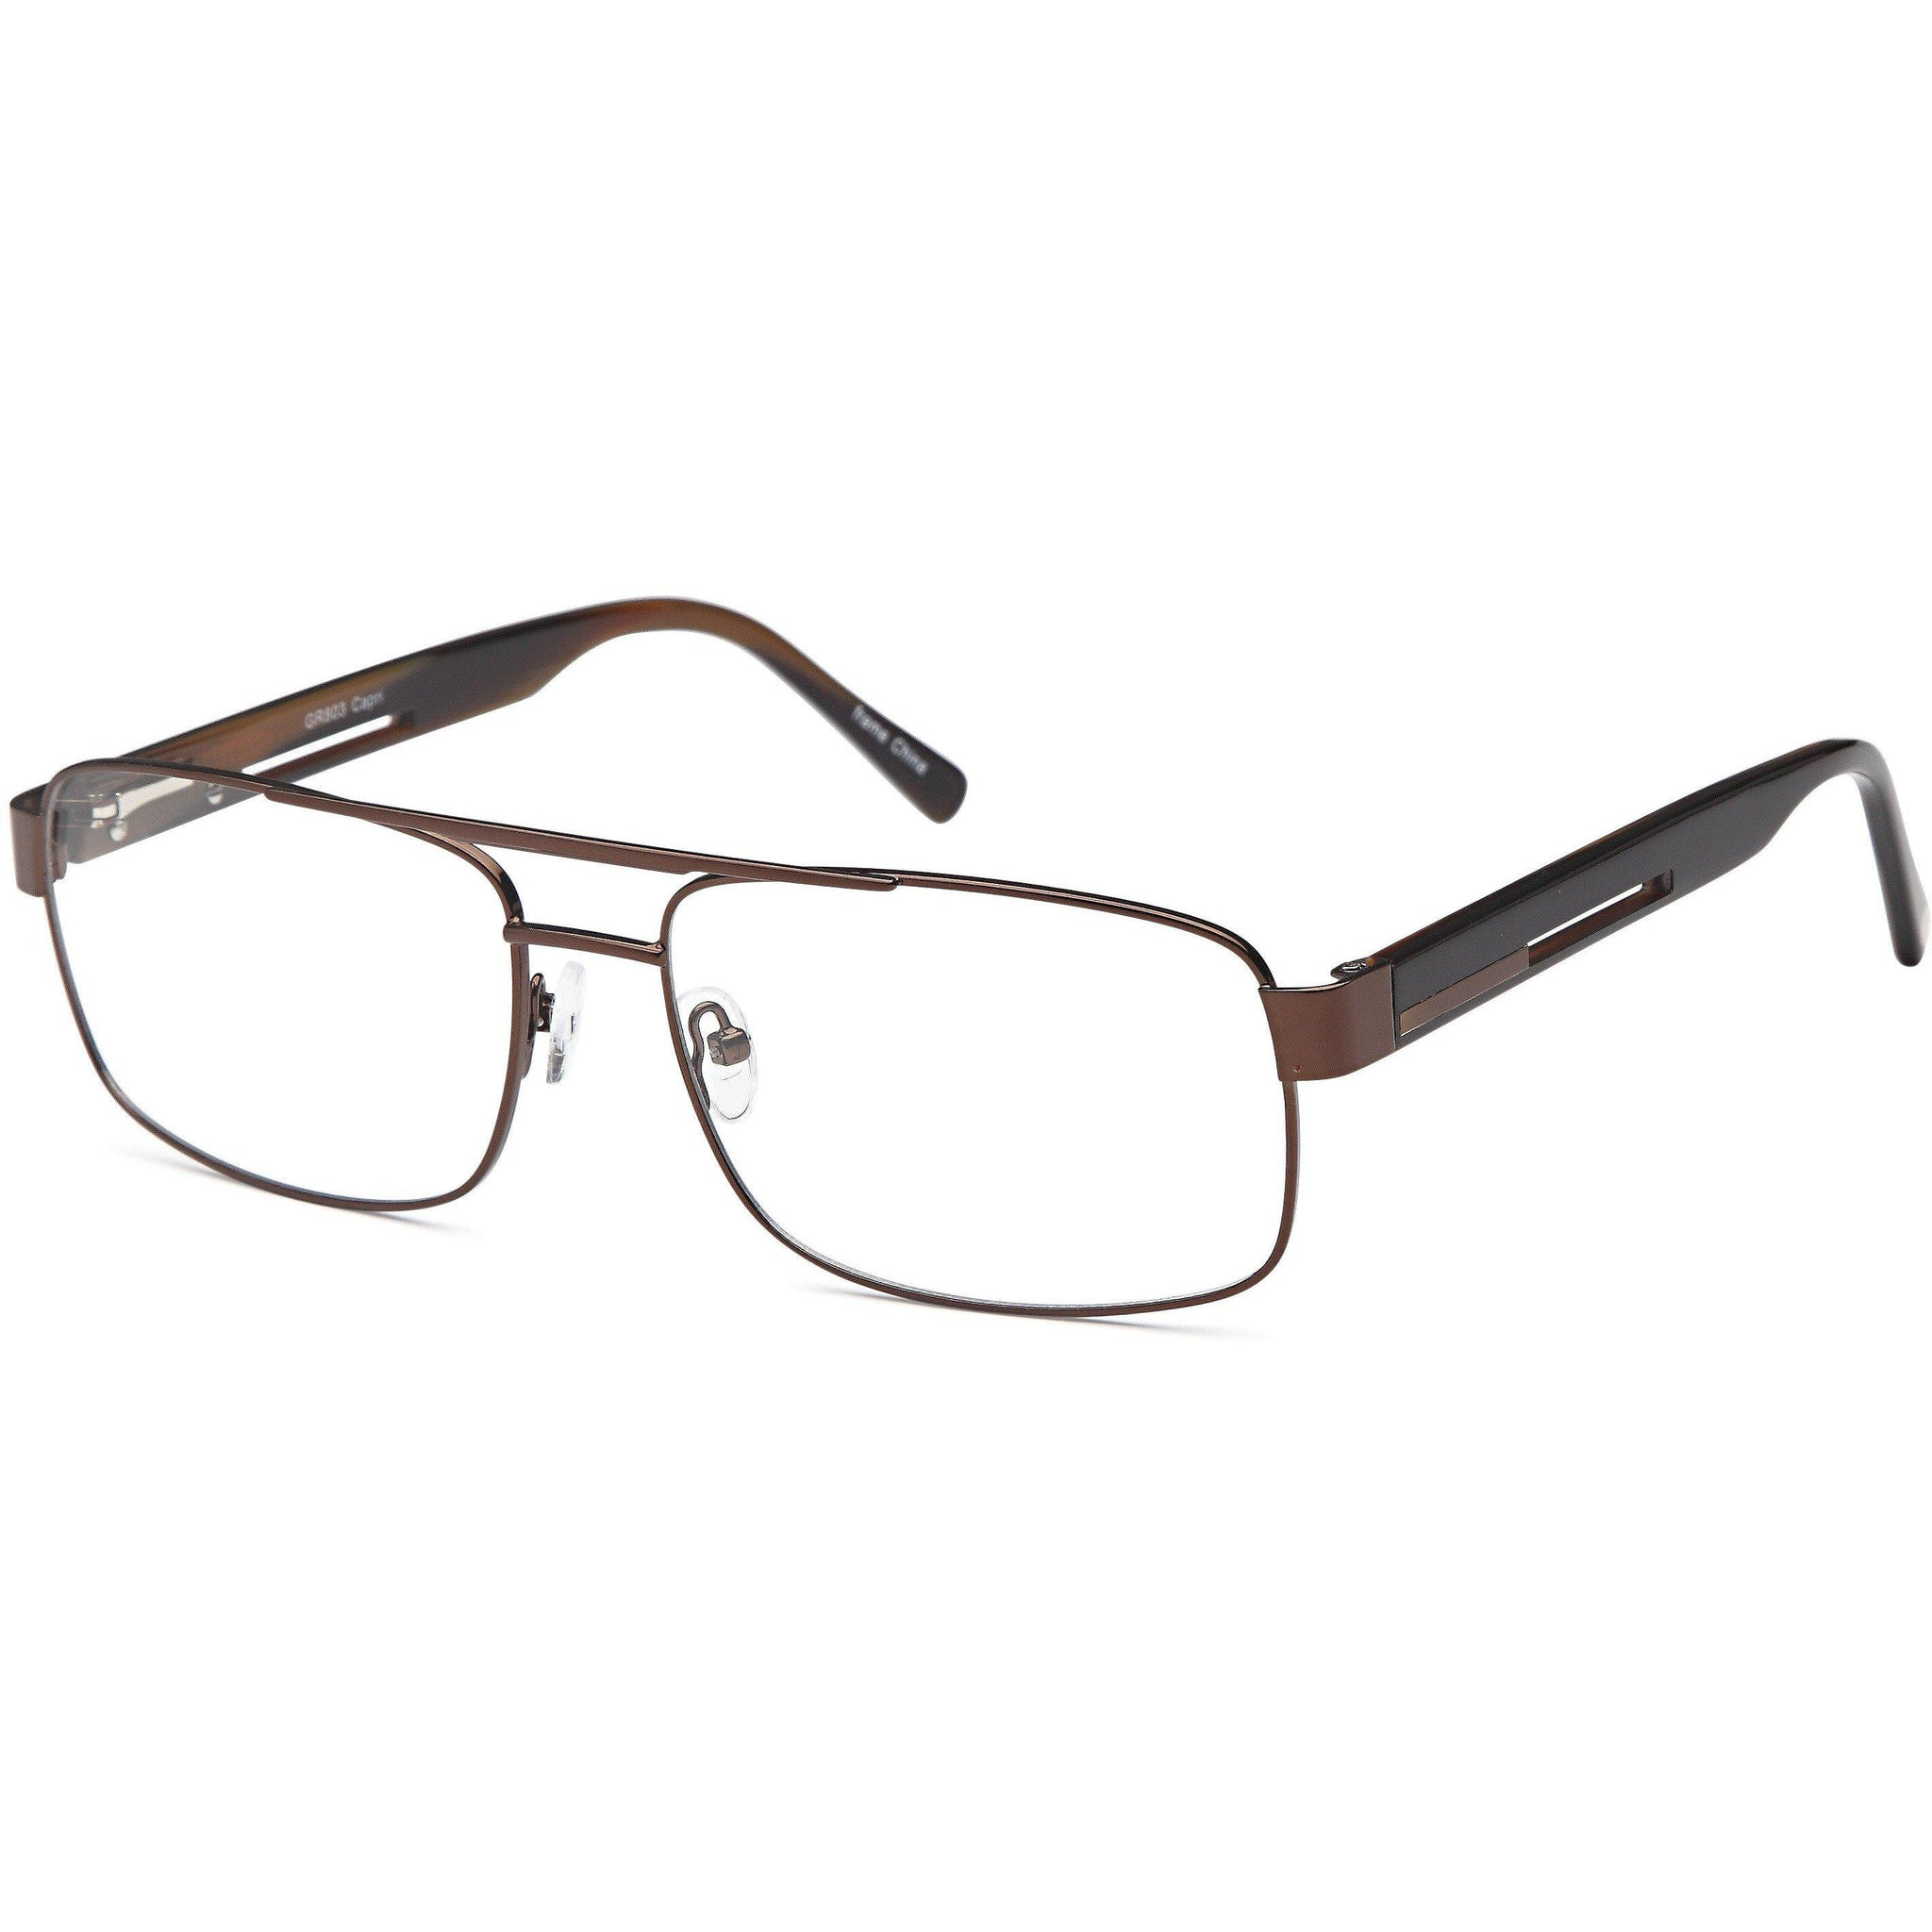 SizeUp Prescription Glasses GR 803 Eyeglasses Frames